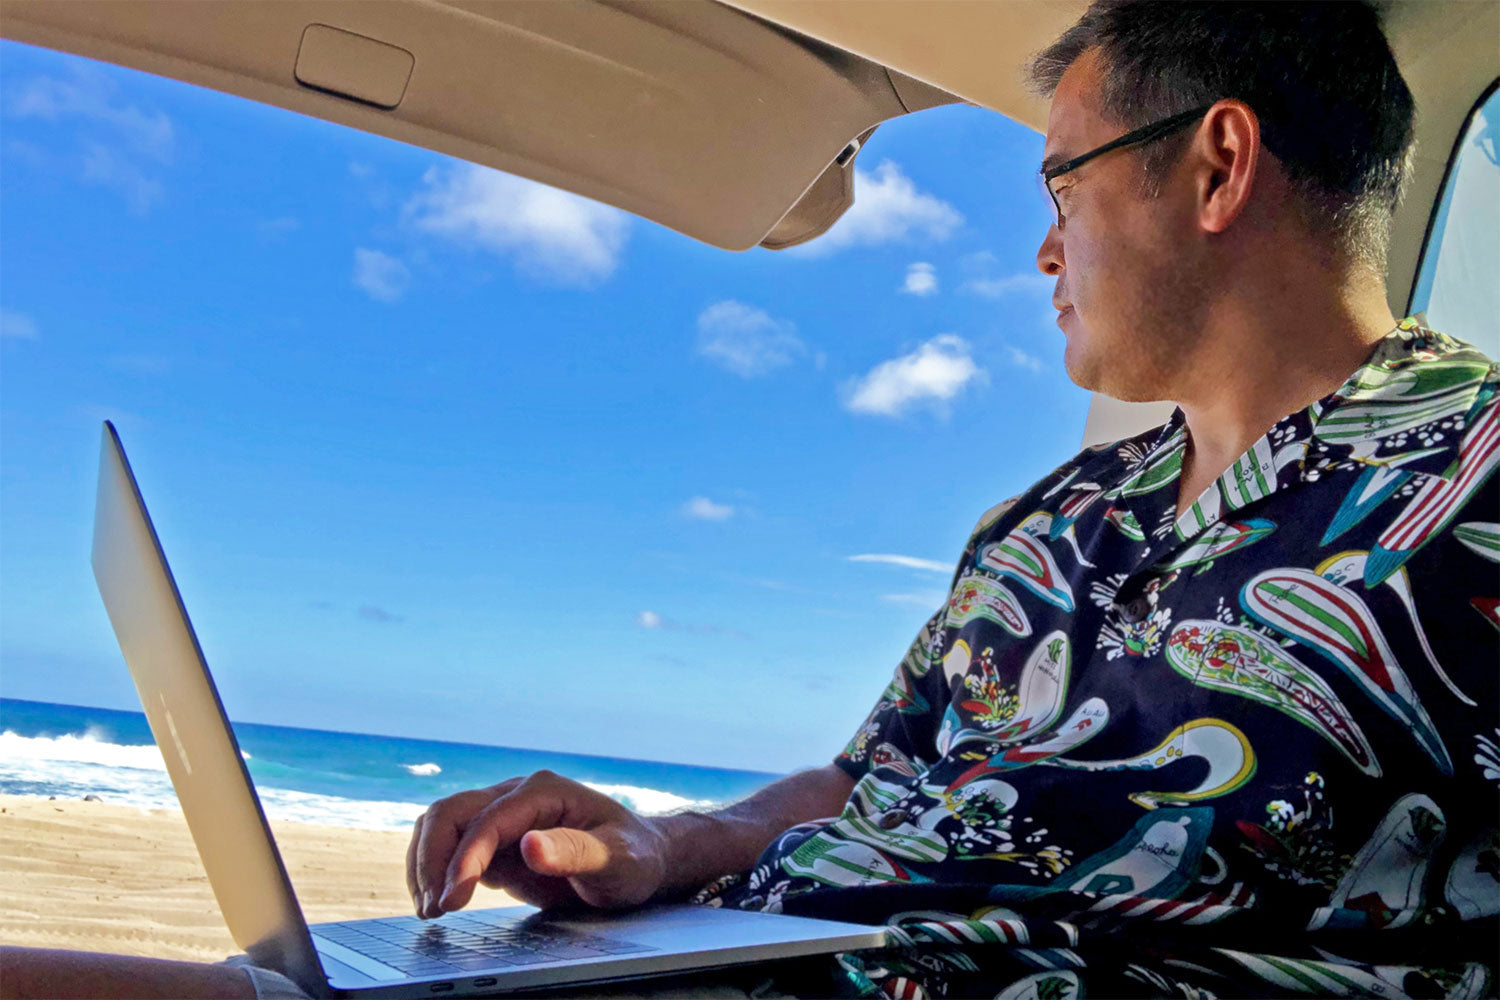 telecomuting on a laptop in the back of an SUV on the beach in a Hawaiian shirt